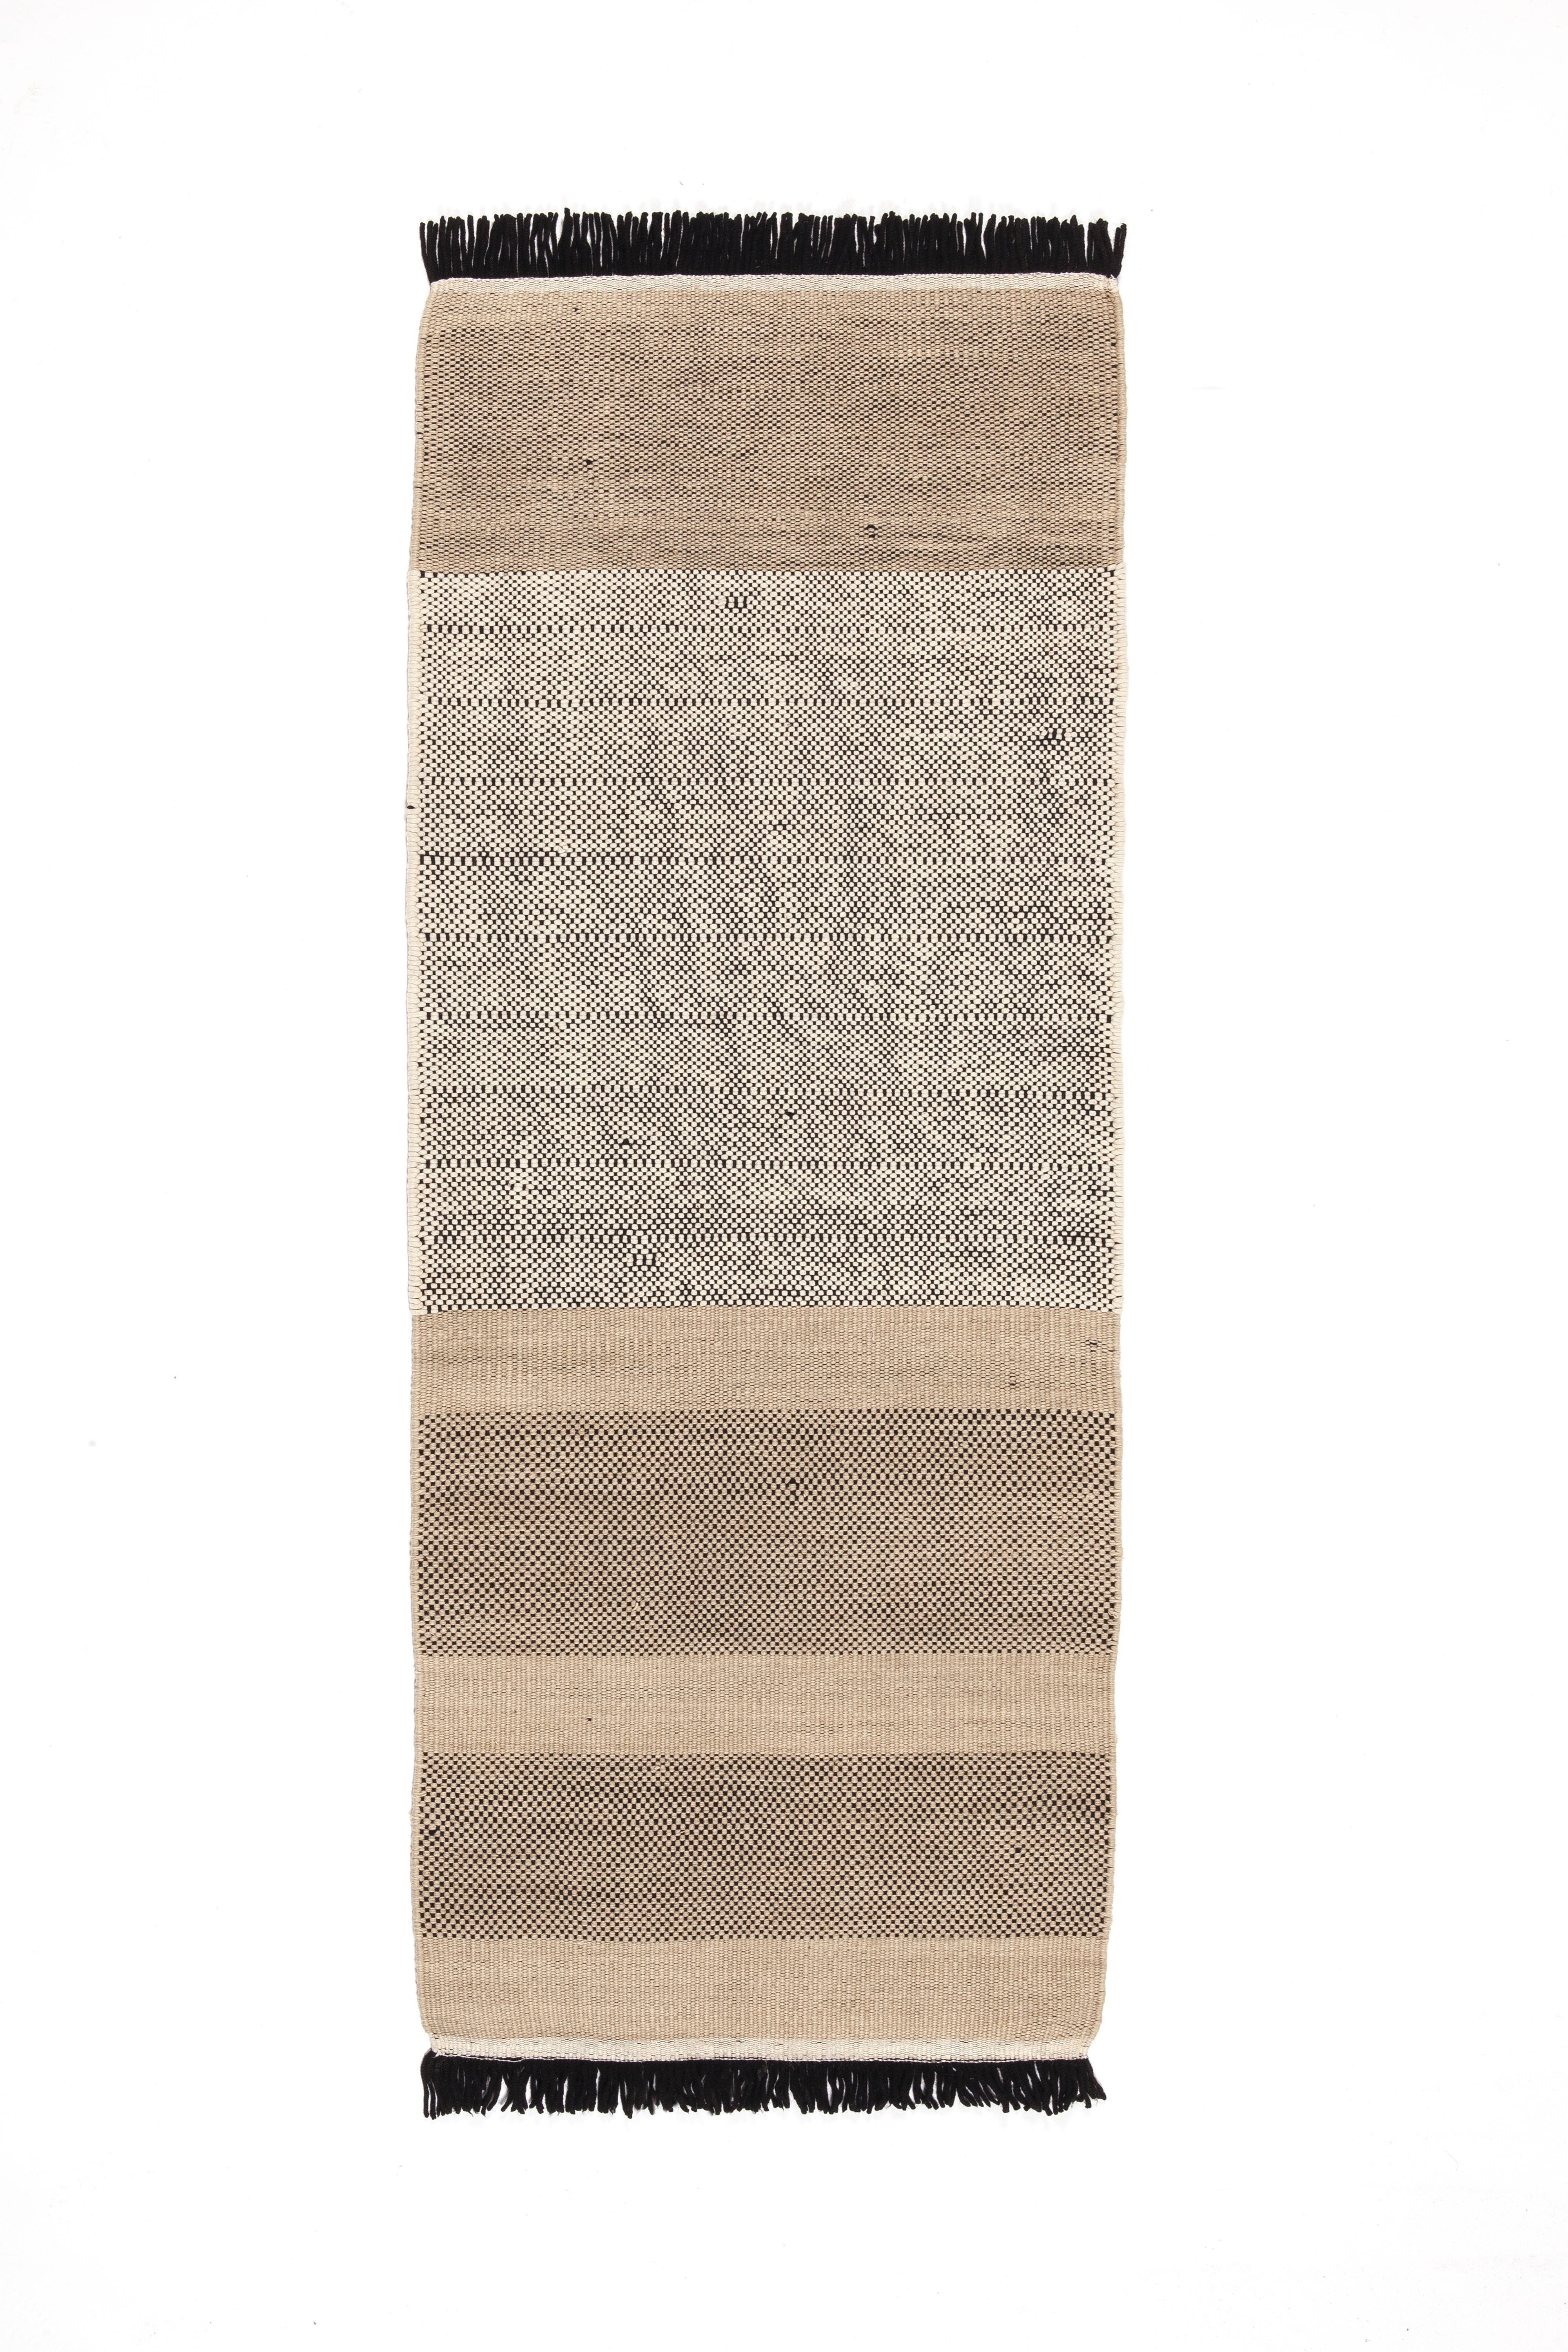 """When it comes to materiality in hallway flooring, comfort and durability are key,"" said Ben Anicet, CEO North America, nanimarquina. ""A rug should be long lasting and stain resistant, but also have soft textures that are comforting to guests and make them feel at home."""